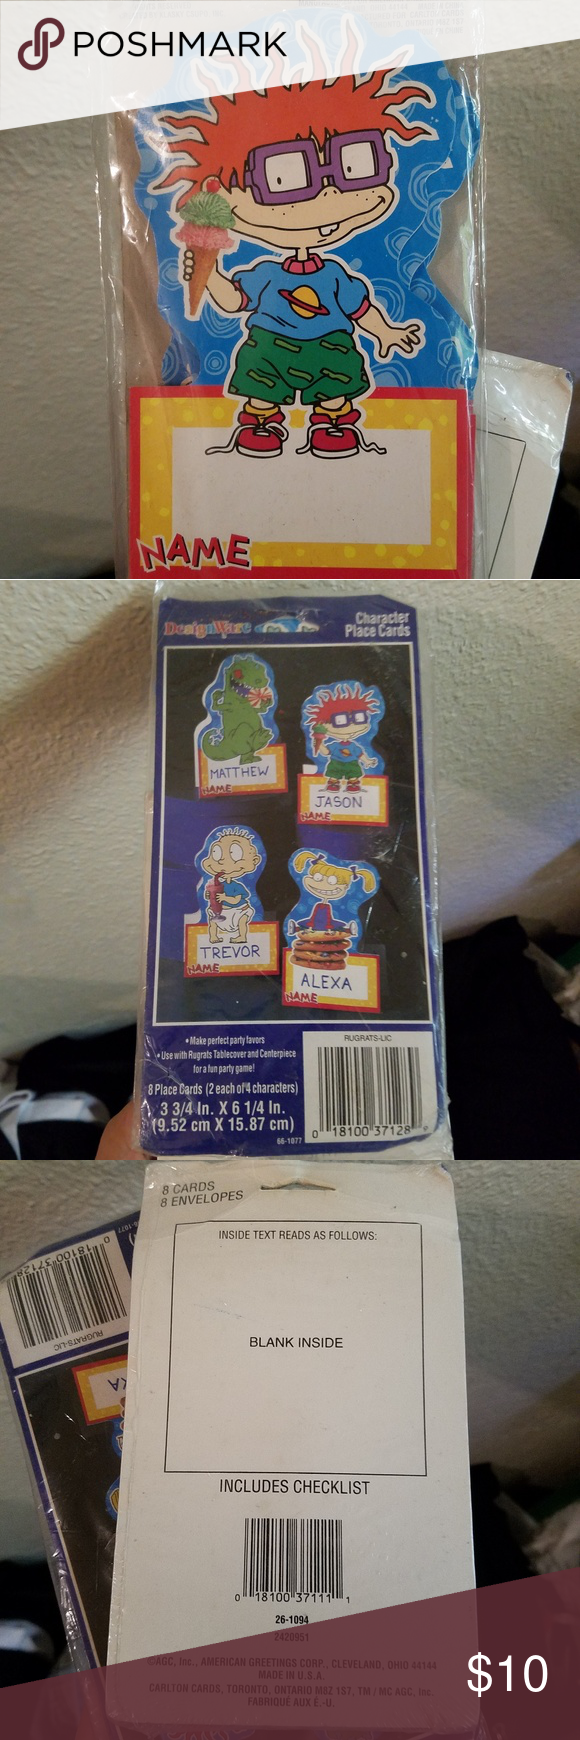 Rugrats Party Goods Stationary Cards Name Tag Stationary Cards Rugrats Best Part Of Me